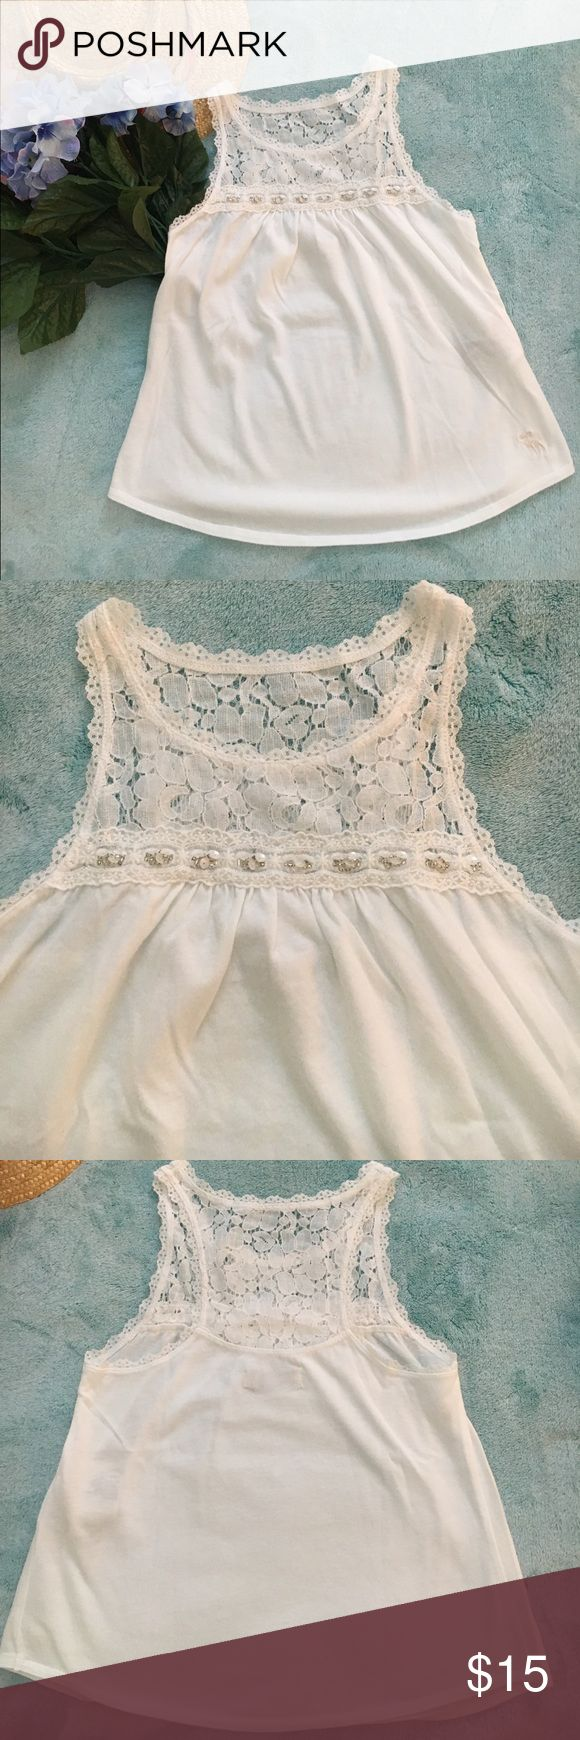 Abercrombie Girls Embellished Tank Size S Pretty & Dainty Abercrombie Girls Embellished Tank. Excellent condition! abercrombie kids Shirts & Tops Tank Tops